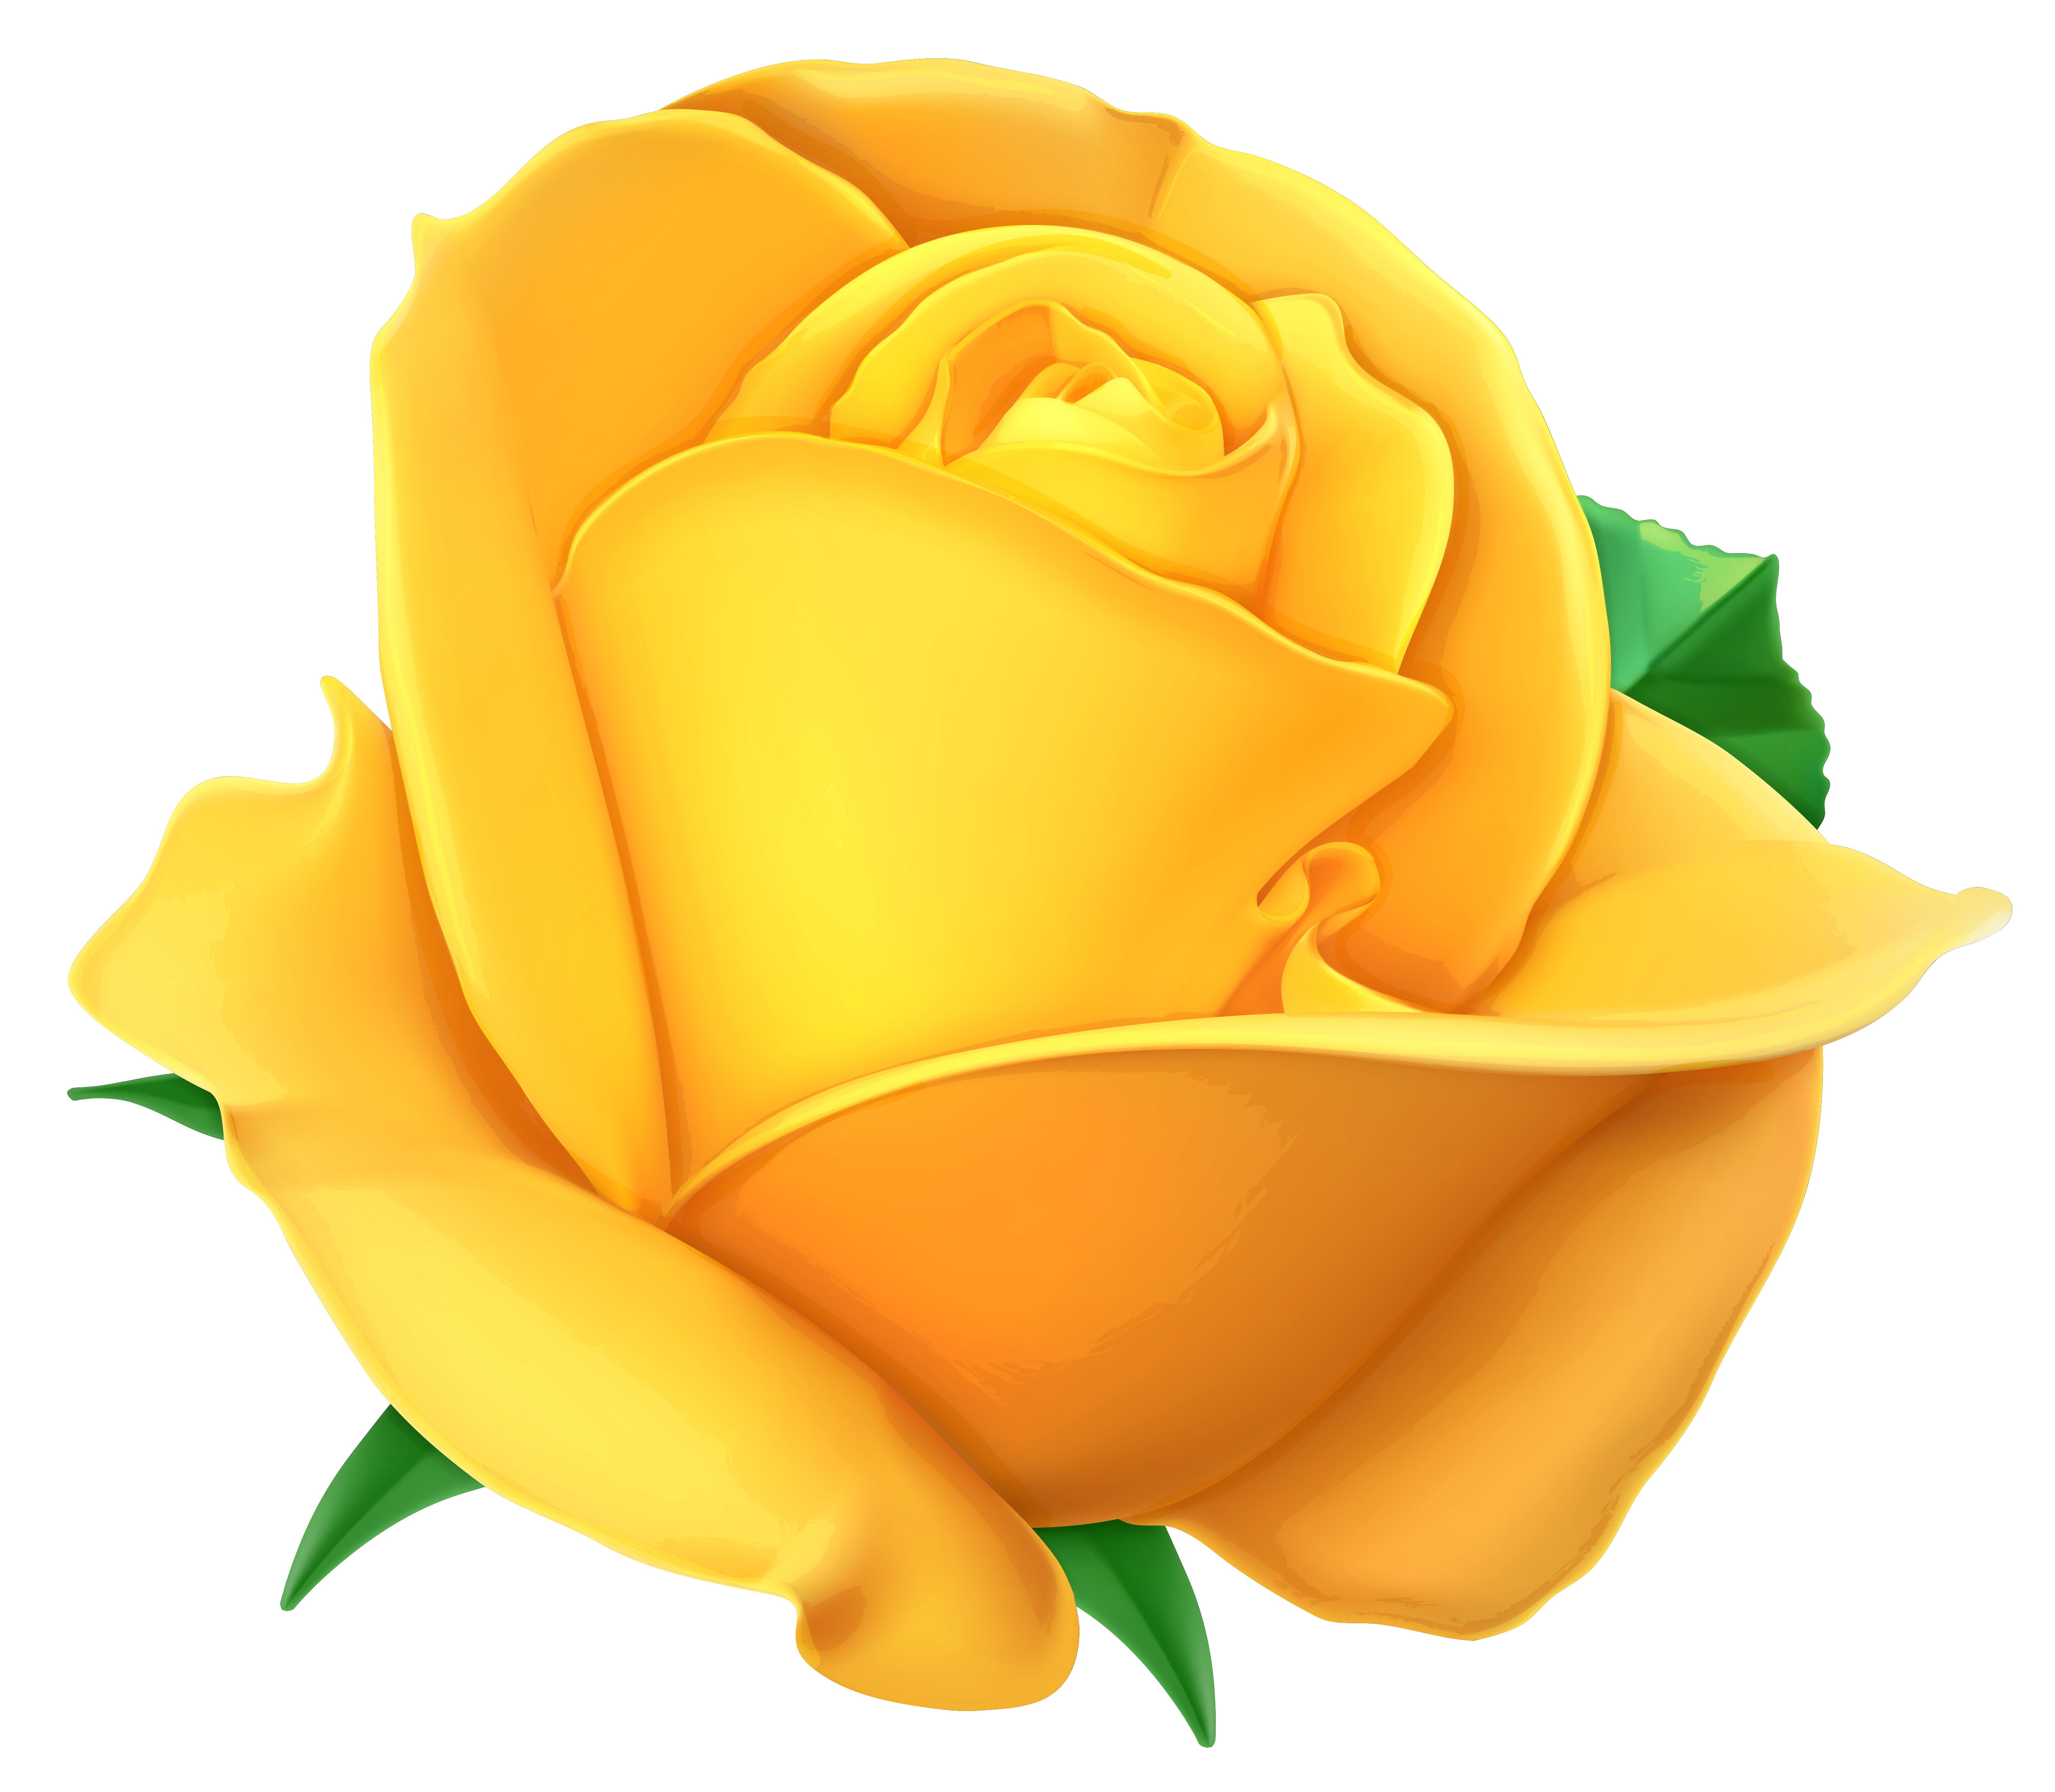 Transparent yellow png picture. Clipart shapes rose